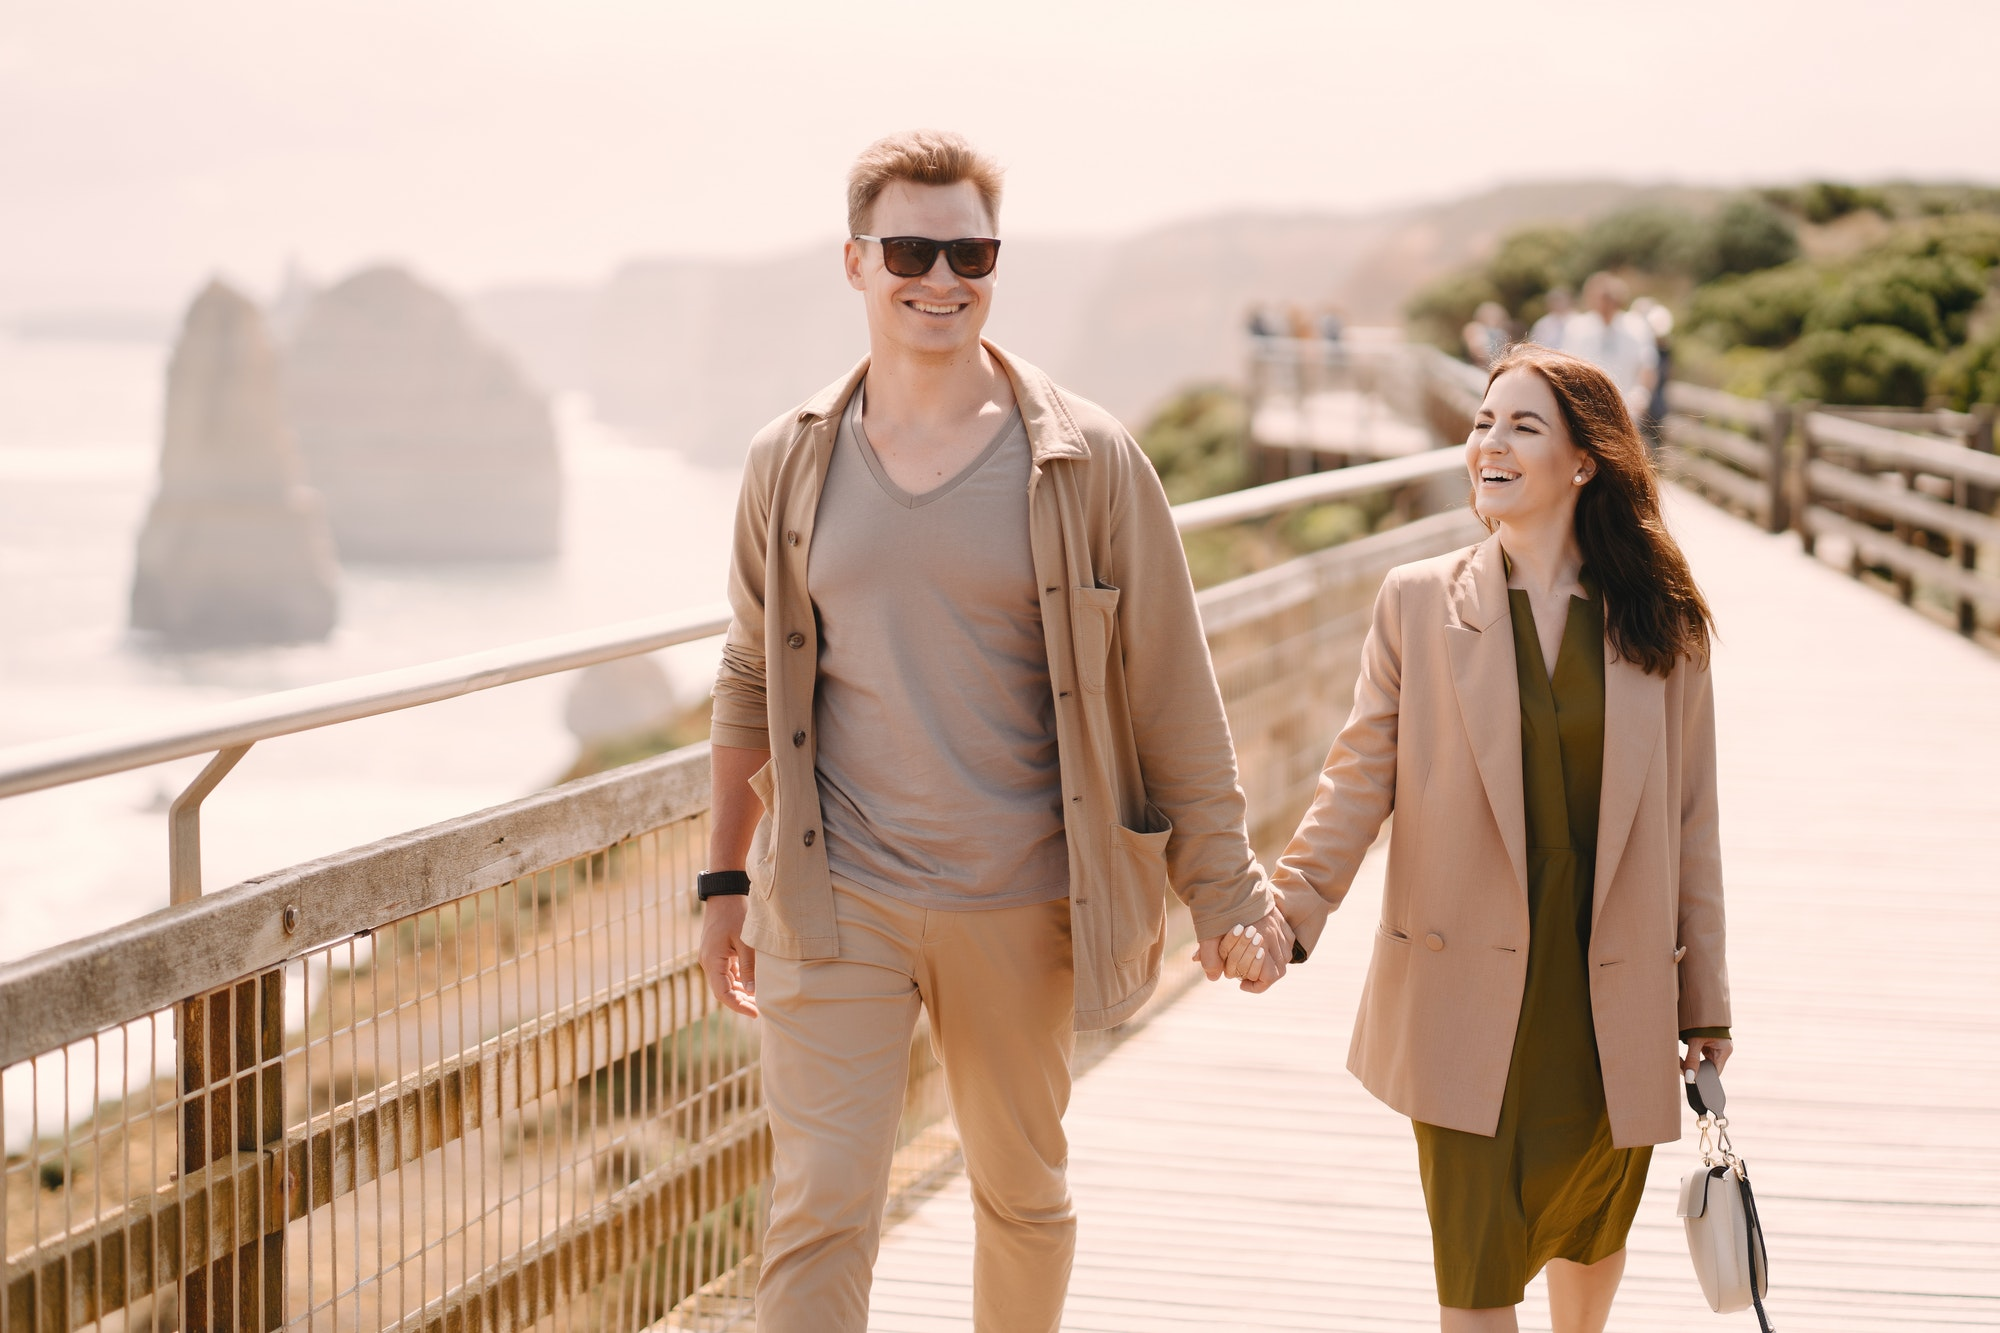 Couple on vacation wlking on a bridge